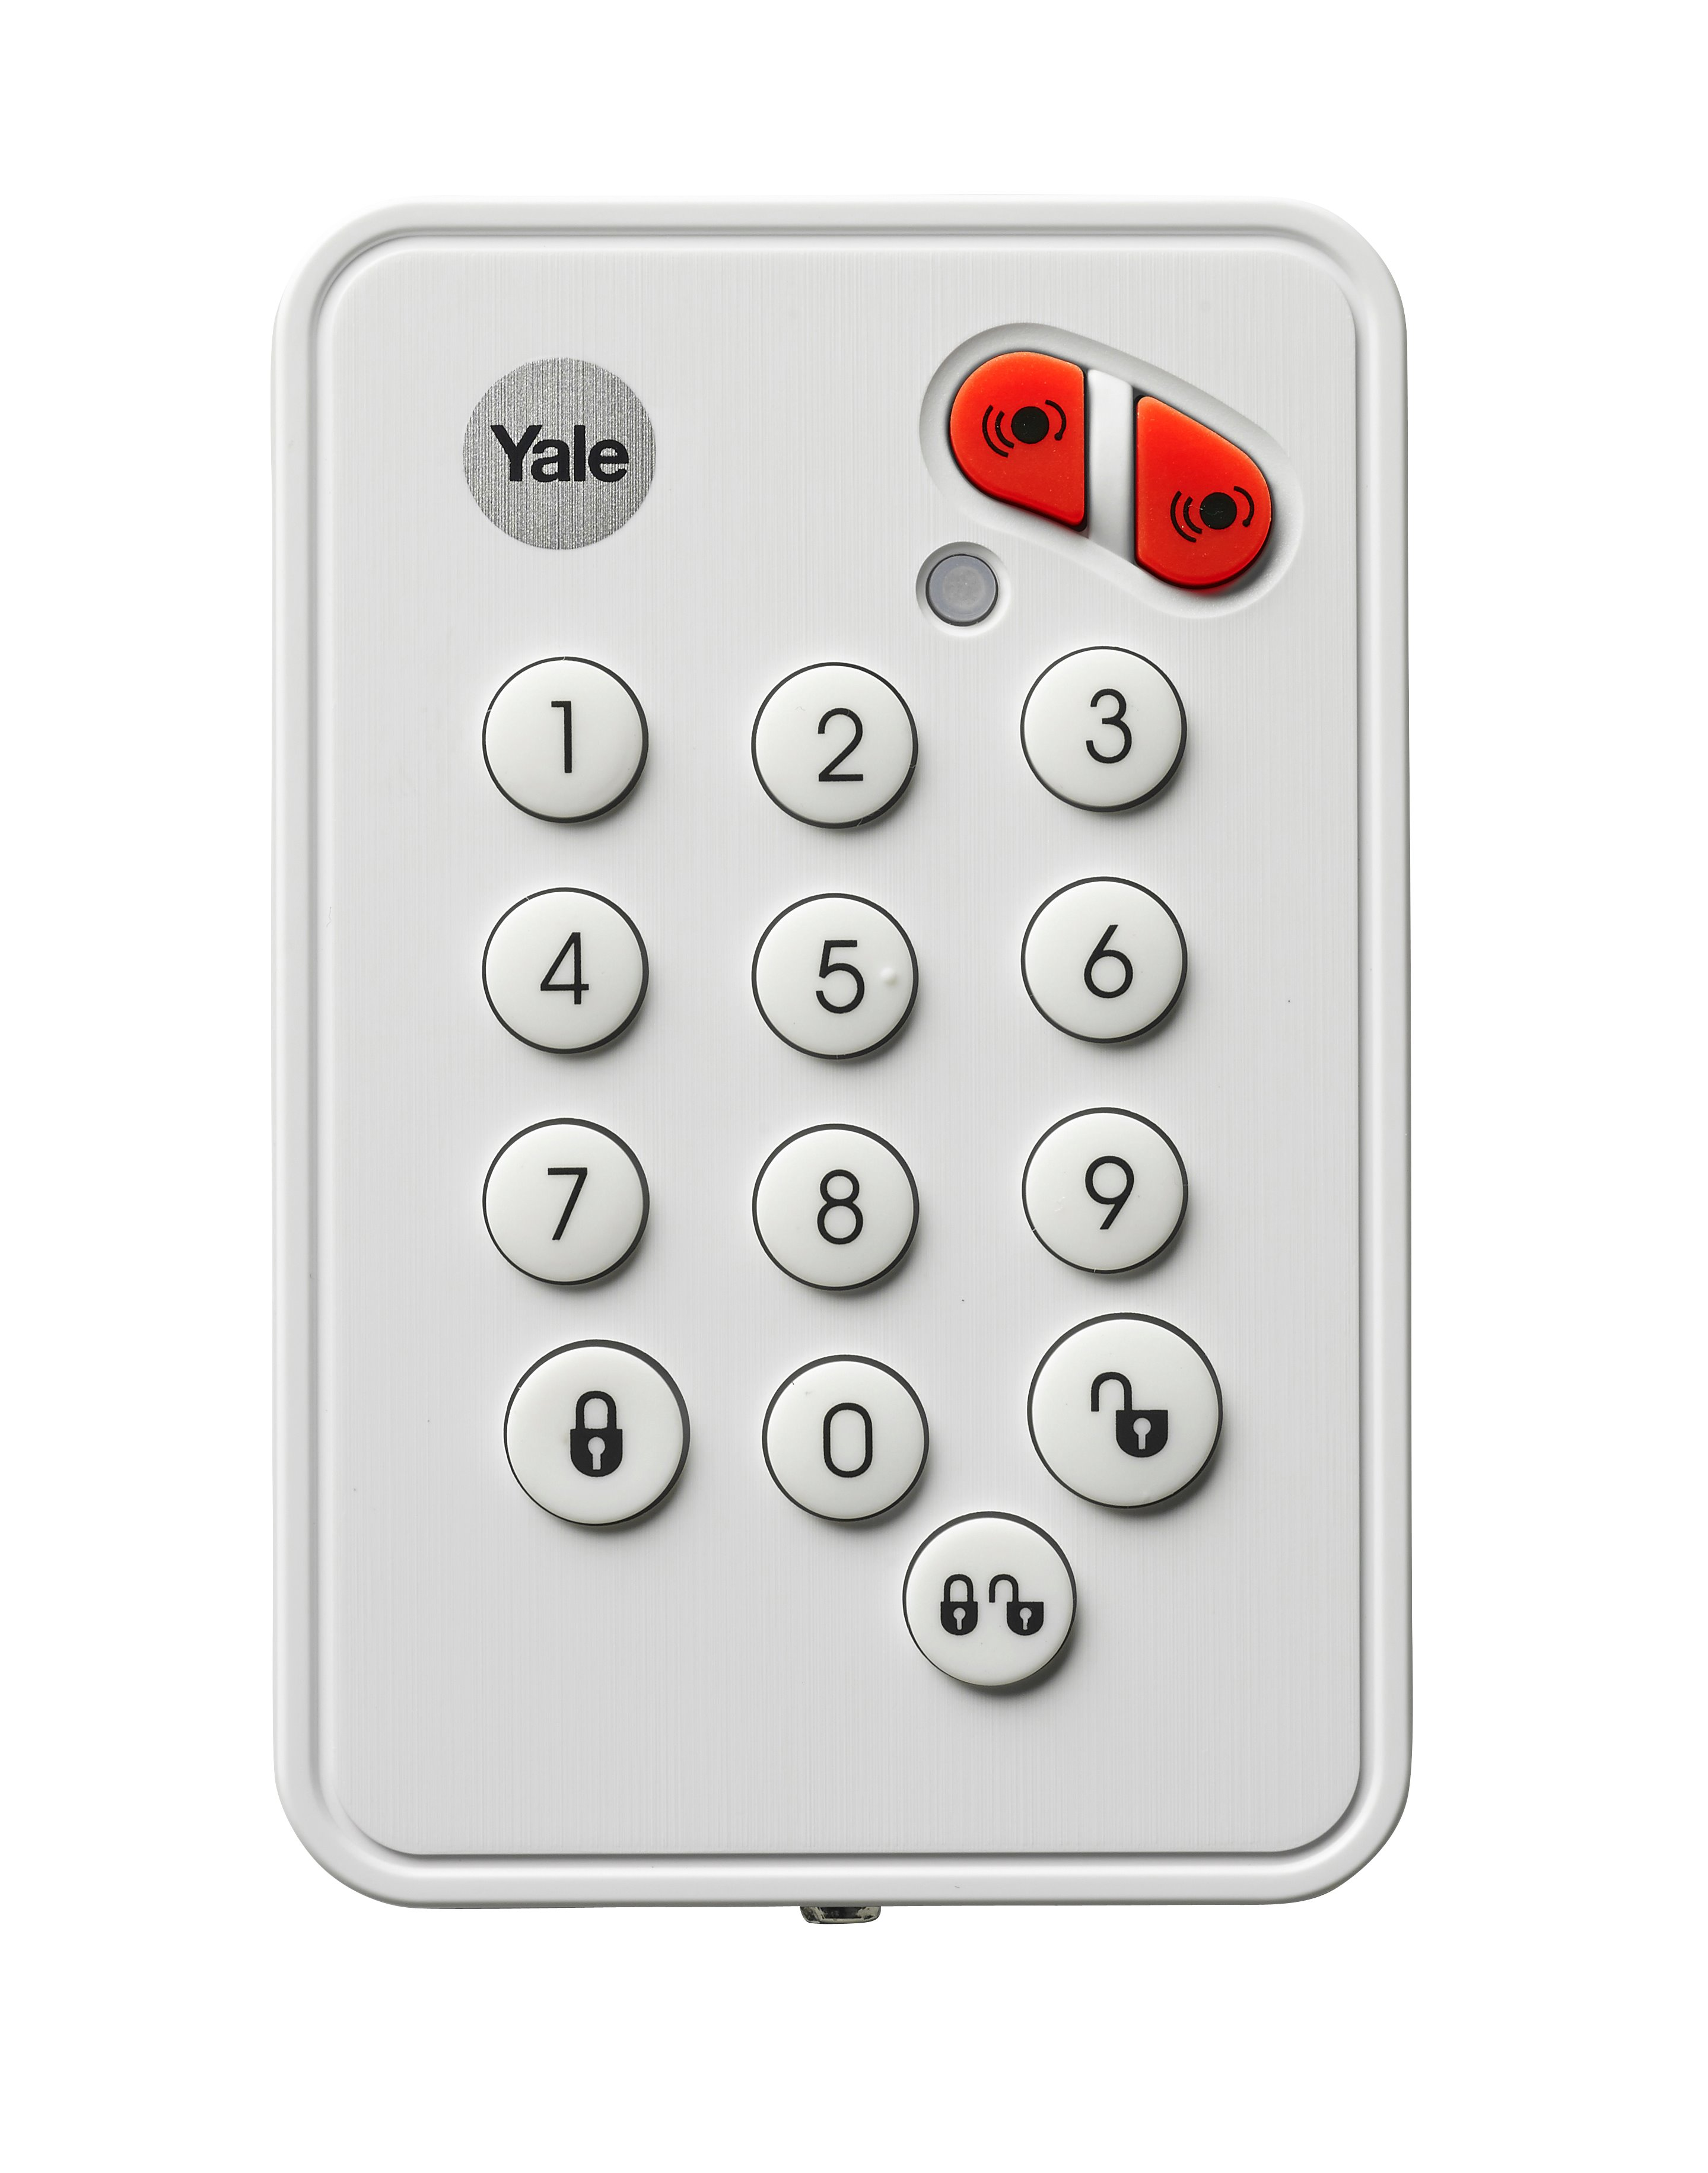 Remote Key Pad